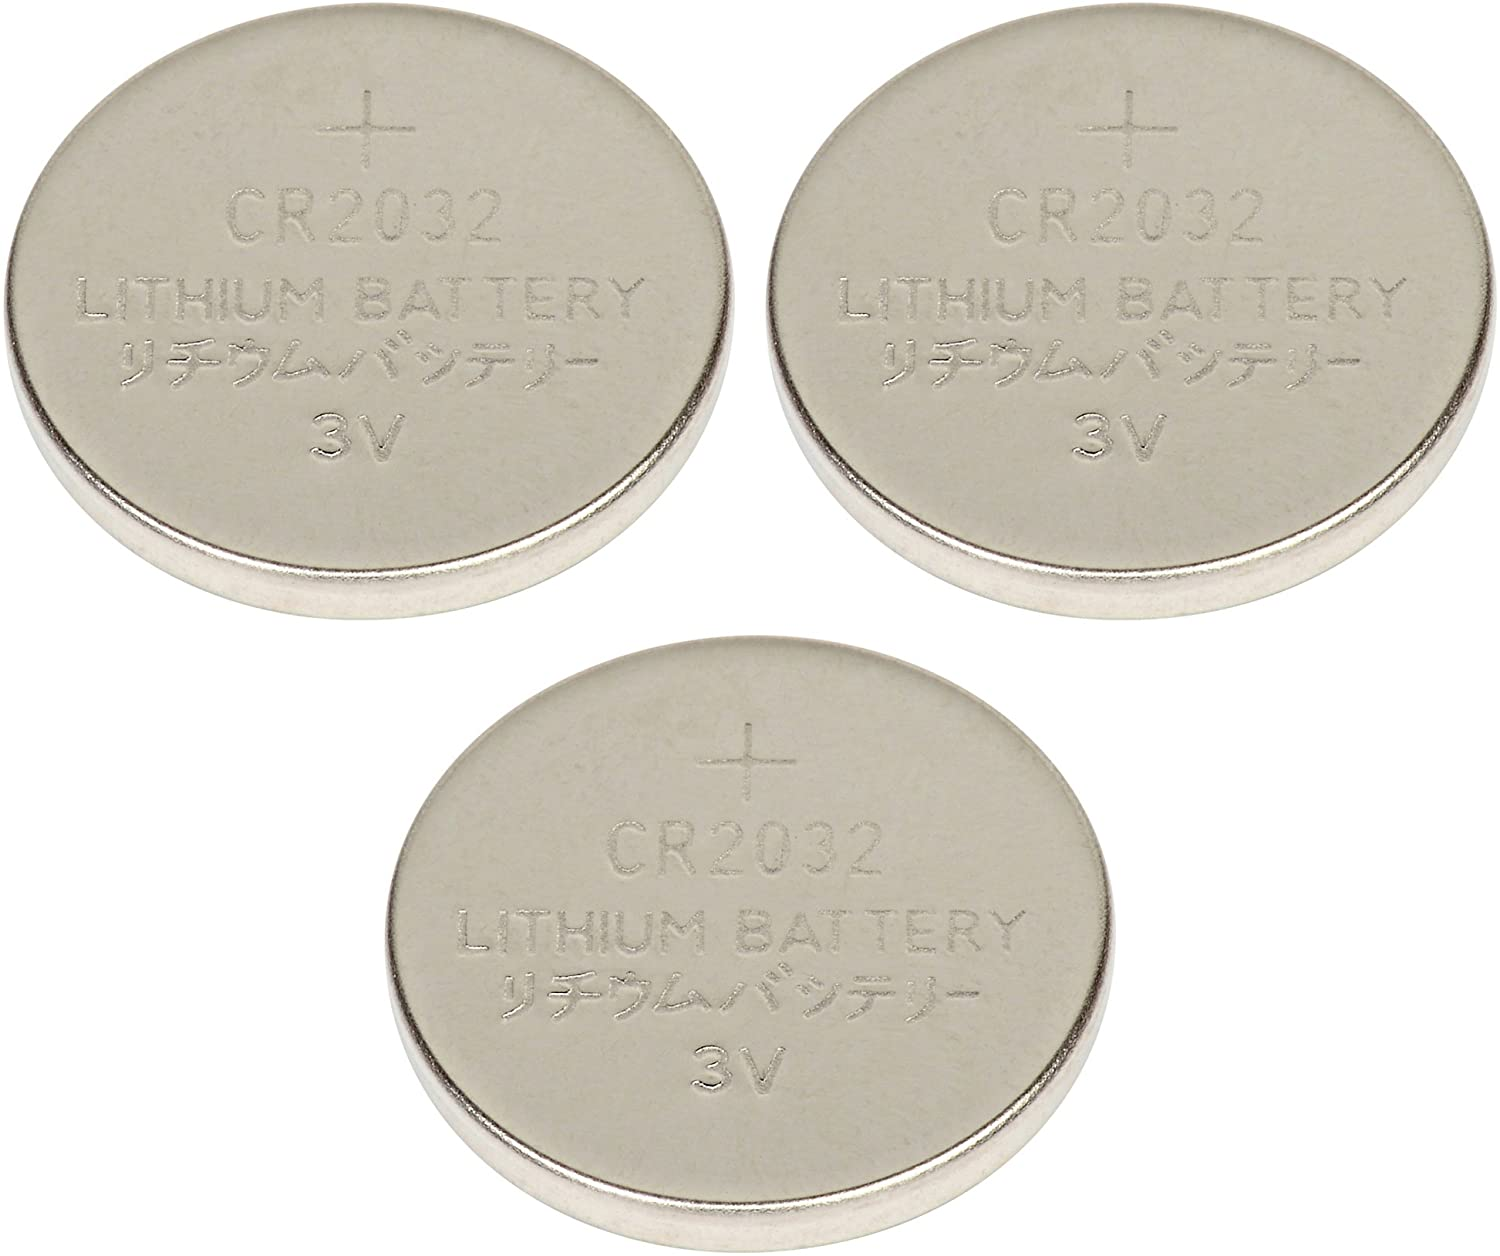 Sony CR2032-B1A Replacement Combo-Pack Includes: 3 x COMP-32 Batteries